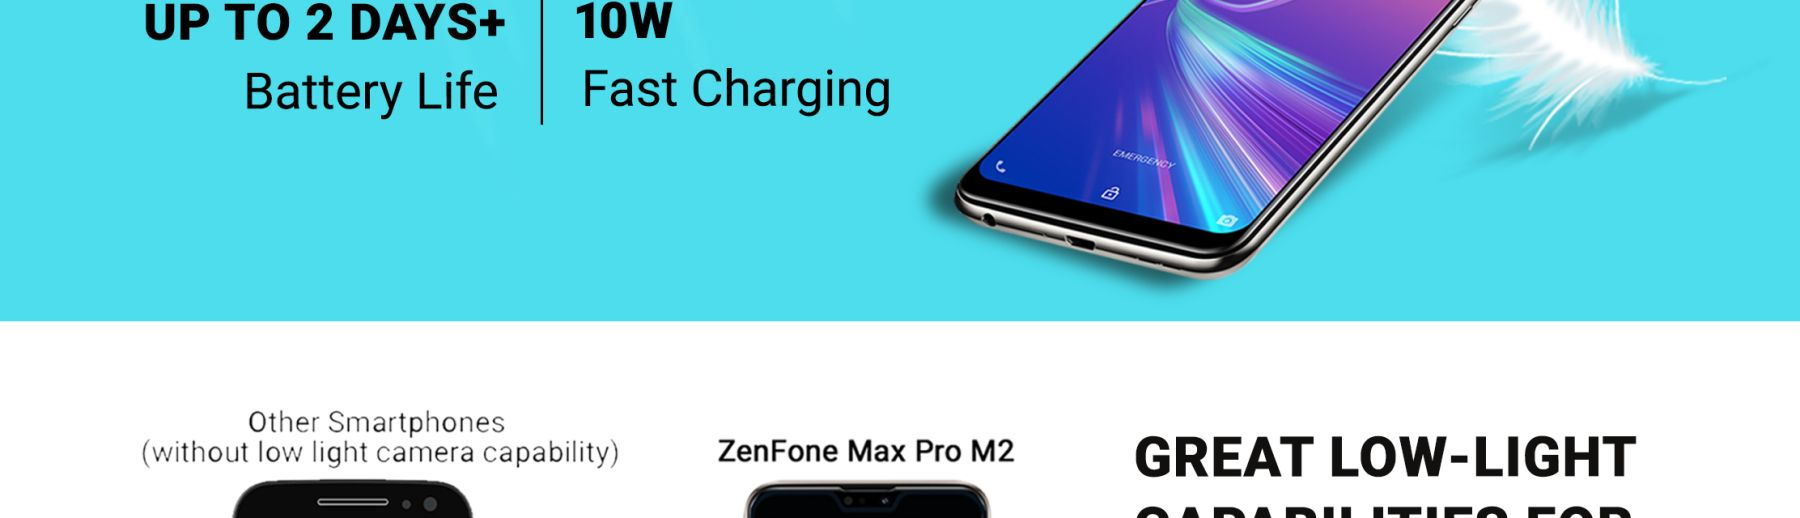 Asus Zenfone Max Pro M2 - Launching on 11th December - Stay